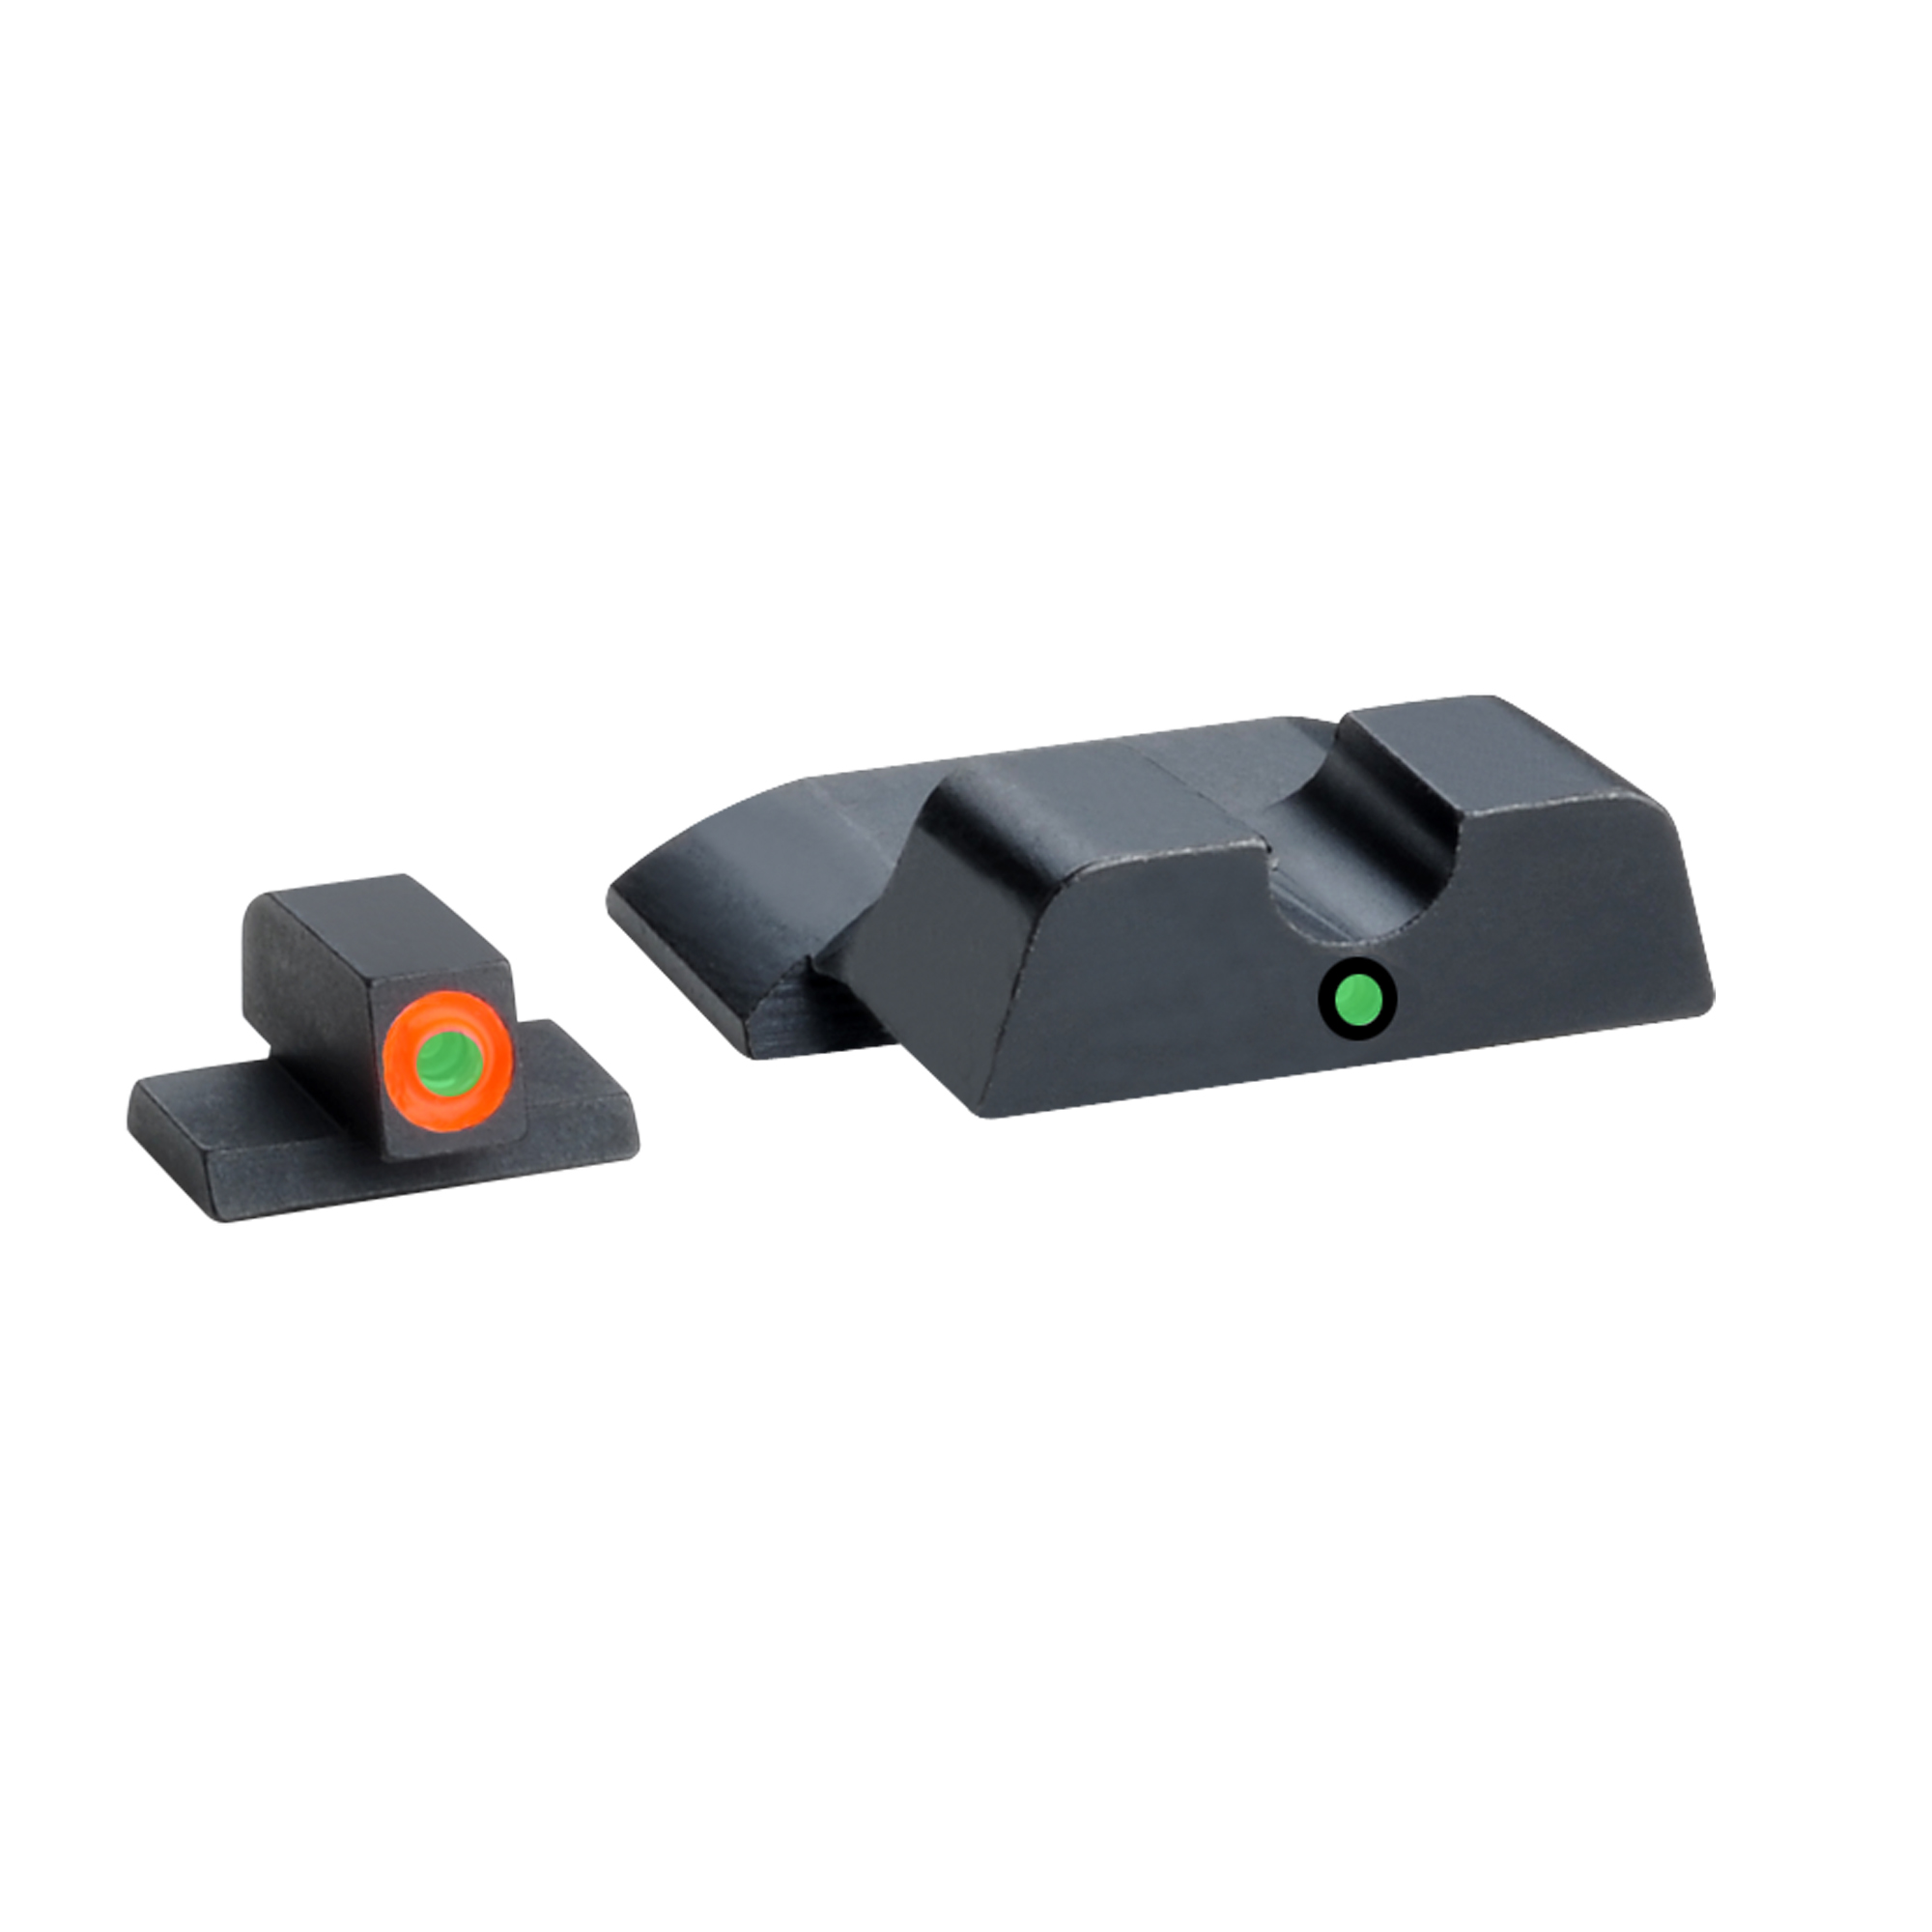 """Utilizing a dot-over-dot configuration"""" their i-Dot sets have an extended square-notch rear for increased sight radius with a glare-reducing undercut rear face. The i-Dot sights provide a quick and easy vertical sight alignment"""" making it an excellent choice for all shooters."""